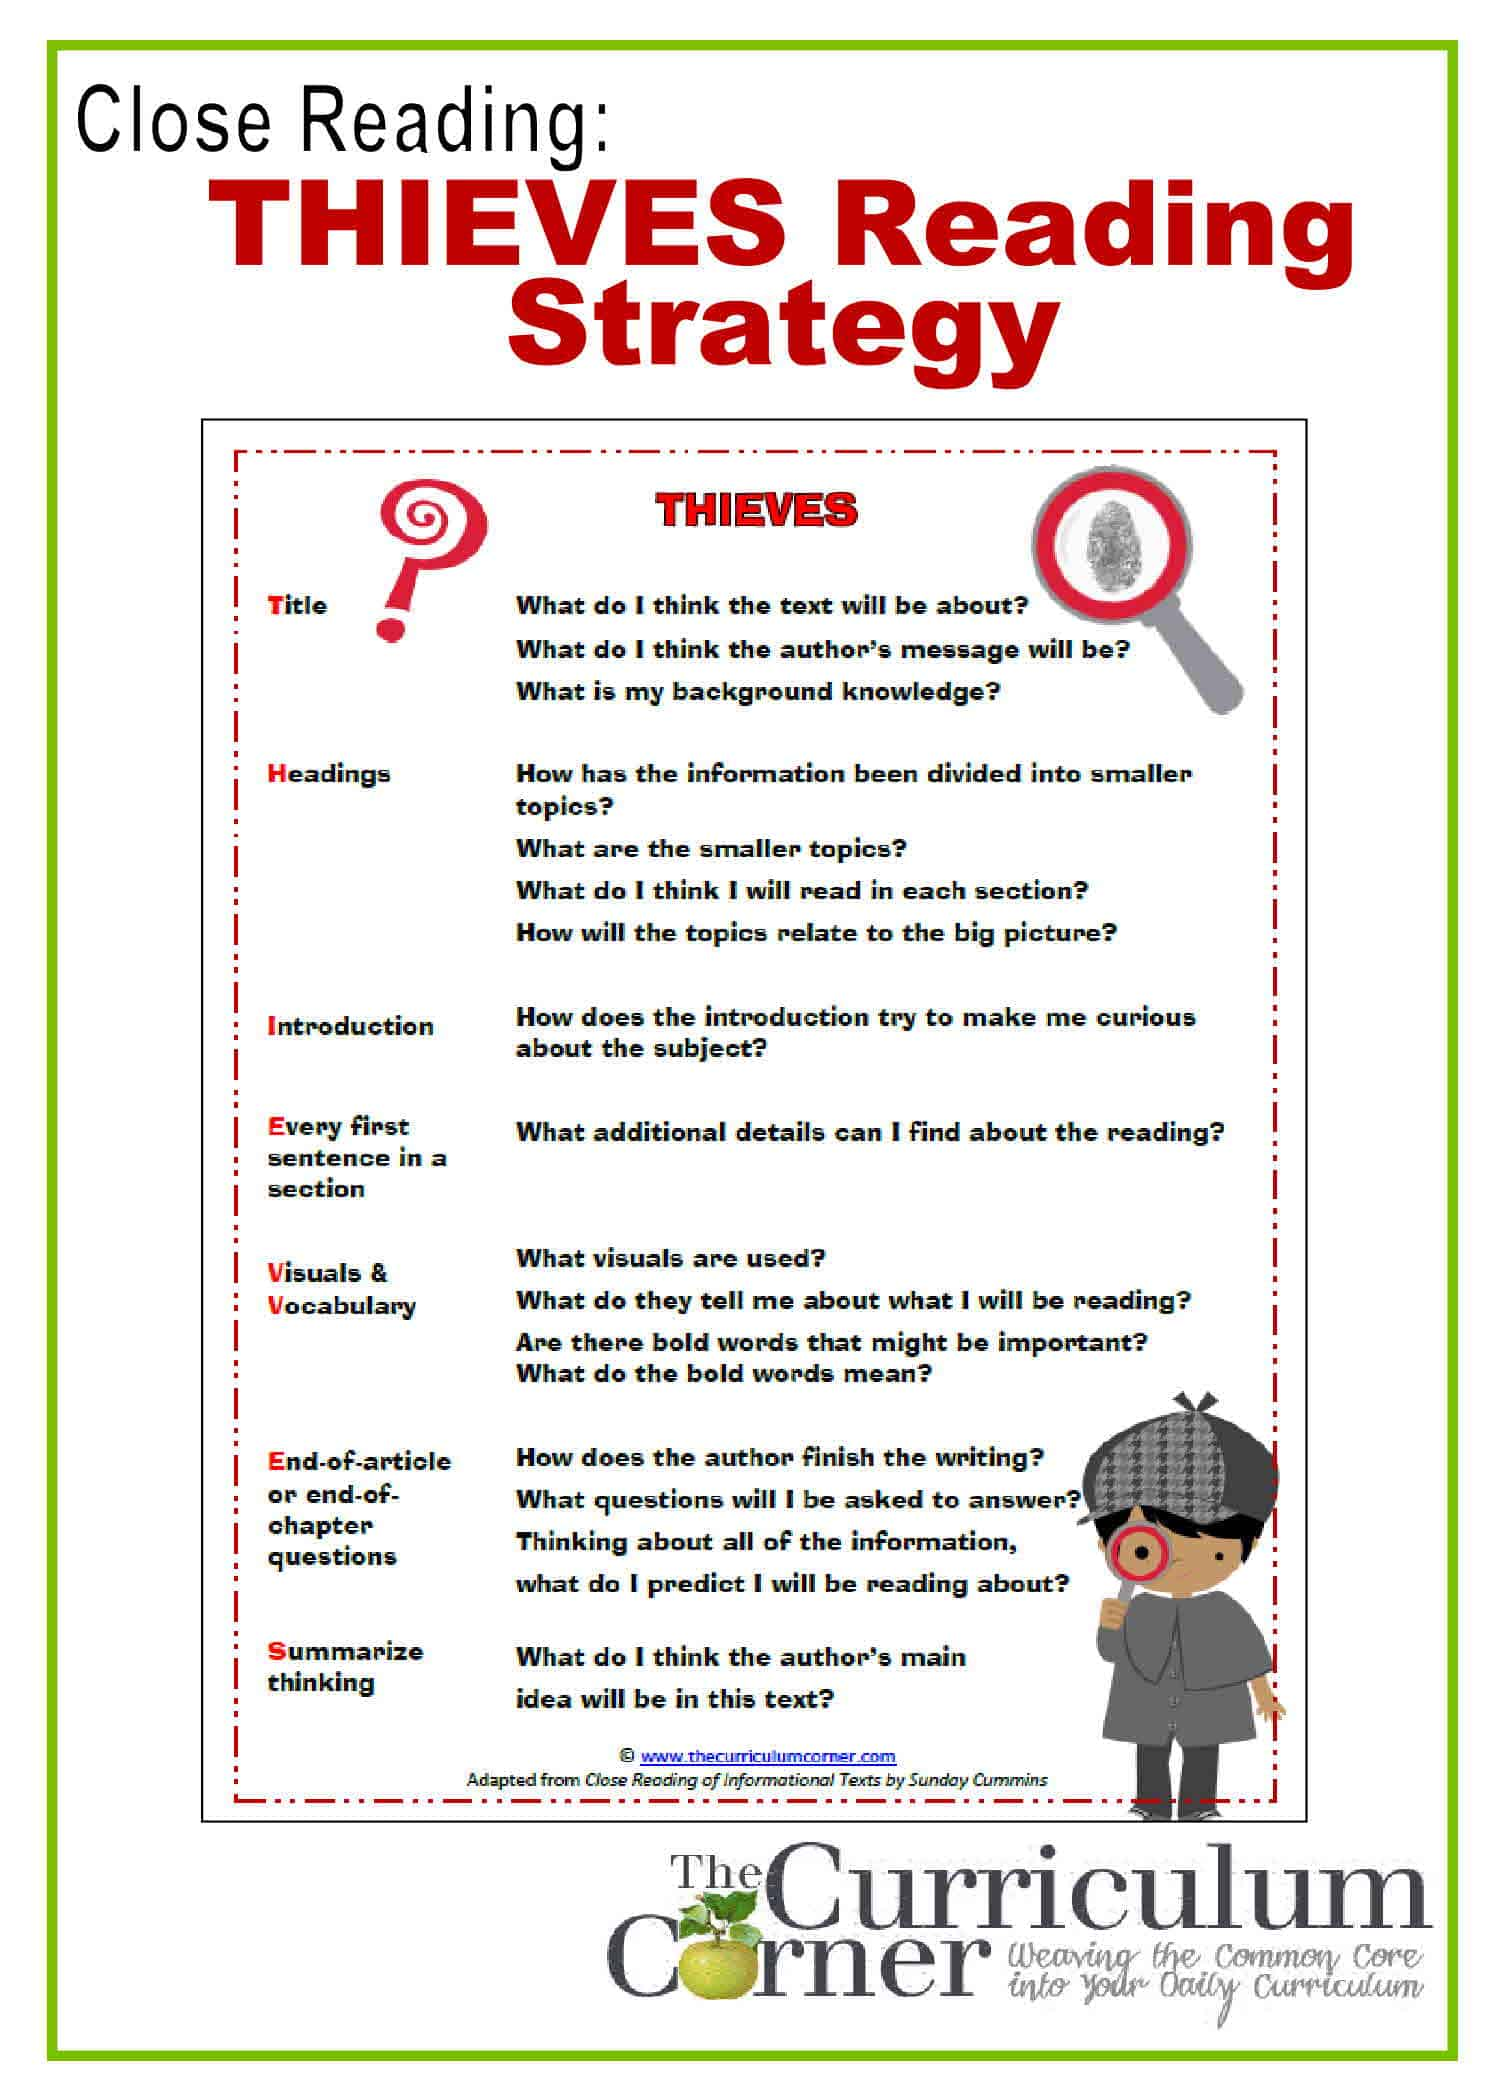 Close Reading Thieves Reading Strategy